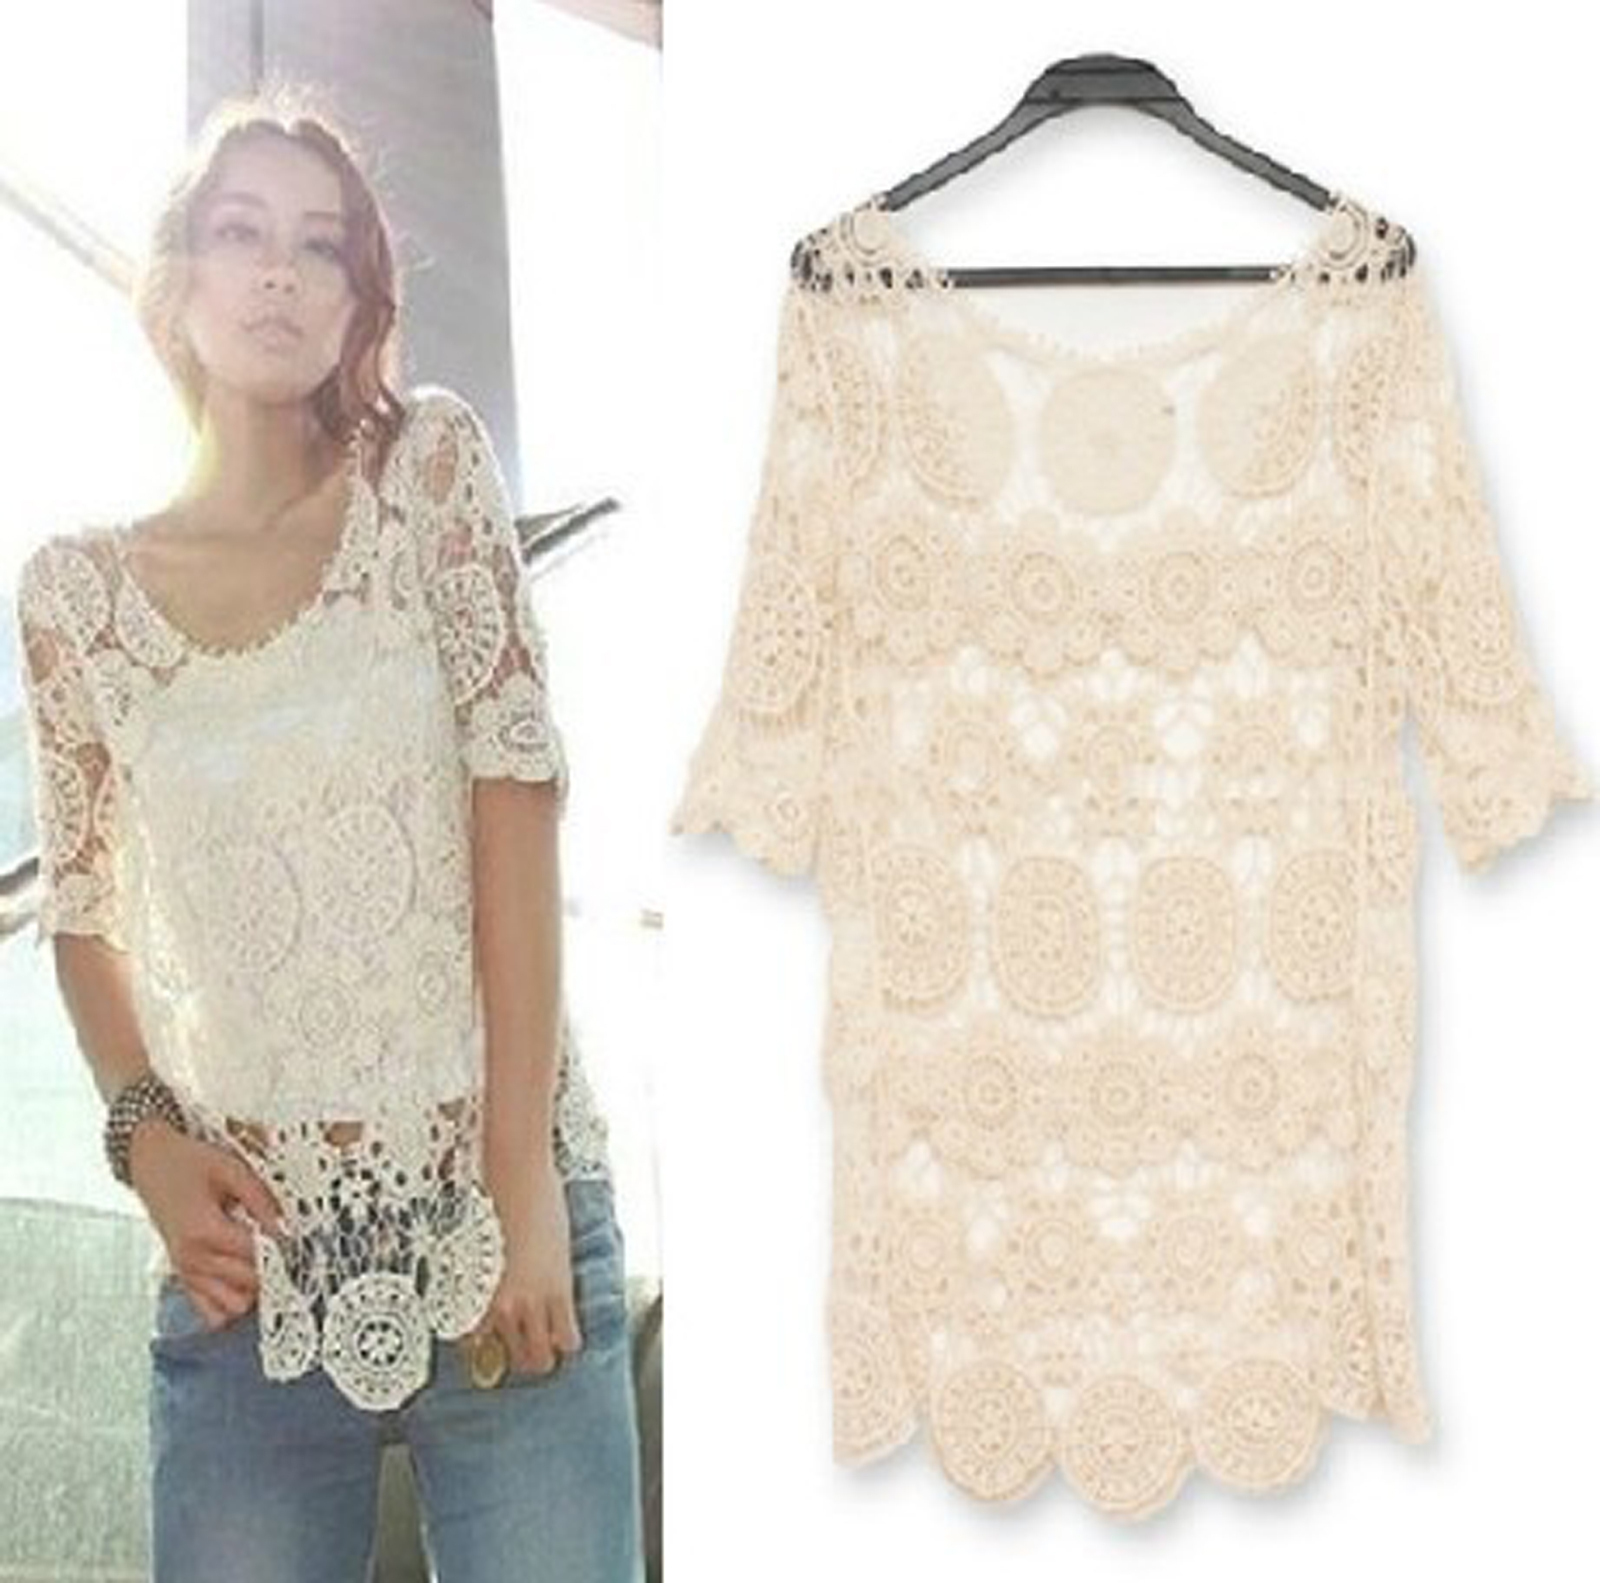 Beige lace crochet top  from Whitelily Fashion on Storenvy